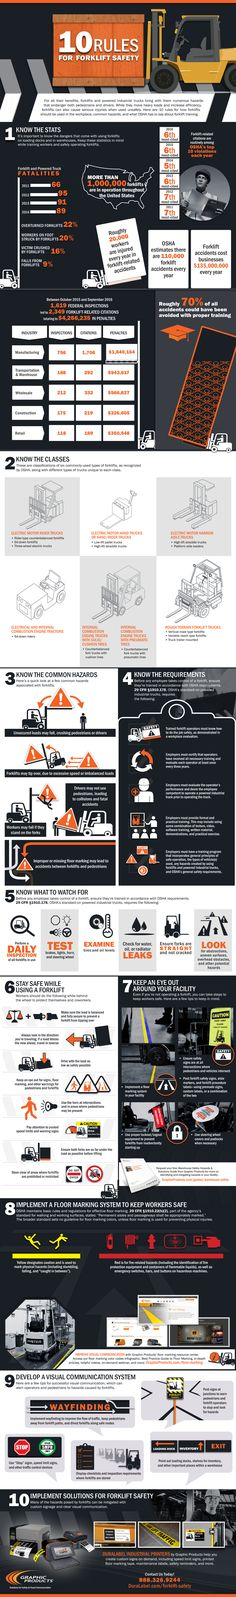 Improve forklift safety, eliminate hazards, and learn more about OSHA requirements with this infographic, offering 10 rules for forklift safety. https://www.graphicproducts.com/infographics/10-rules-for-forklift-safety-infographic/